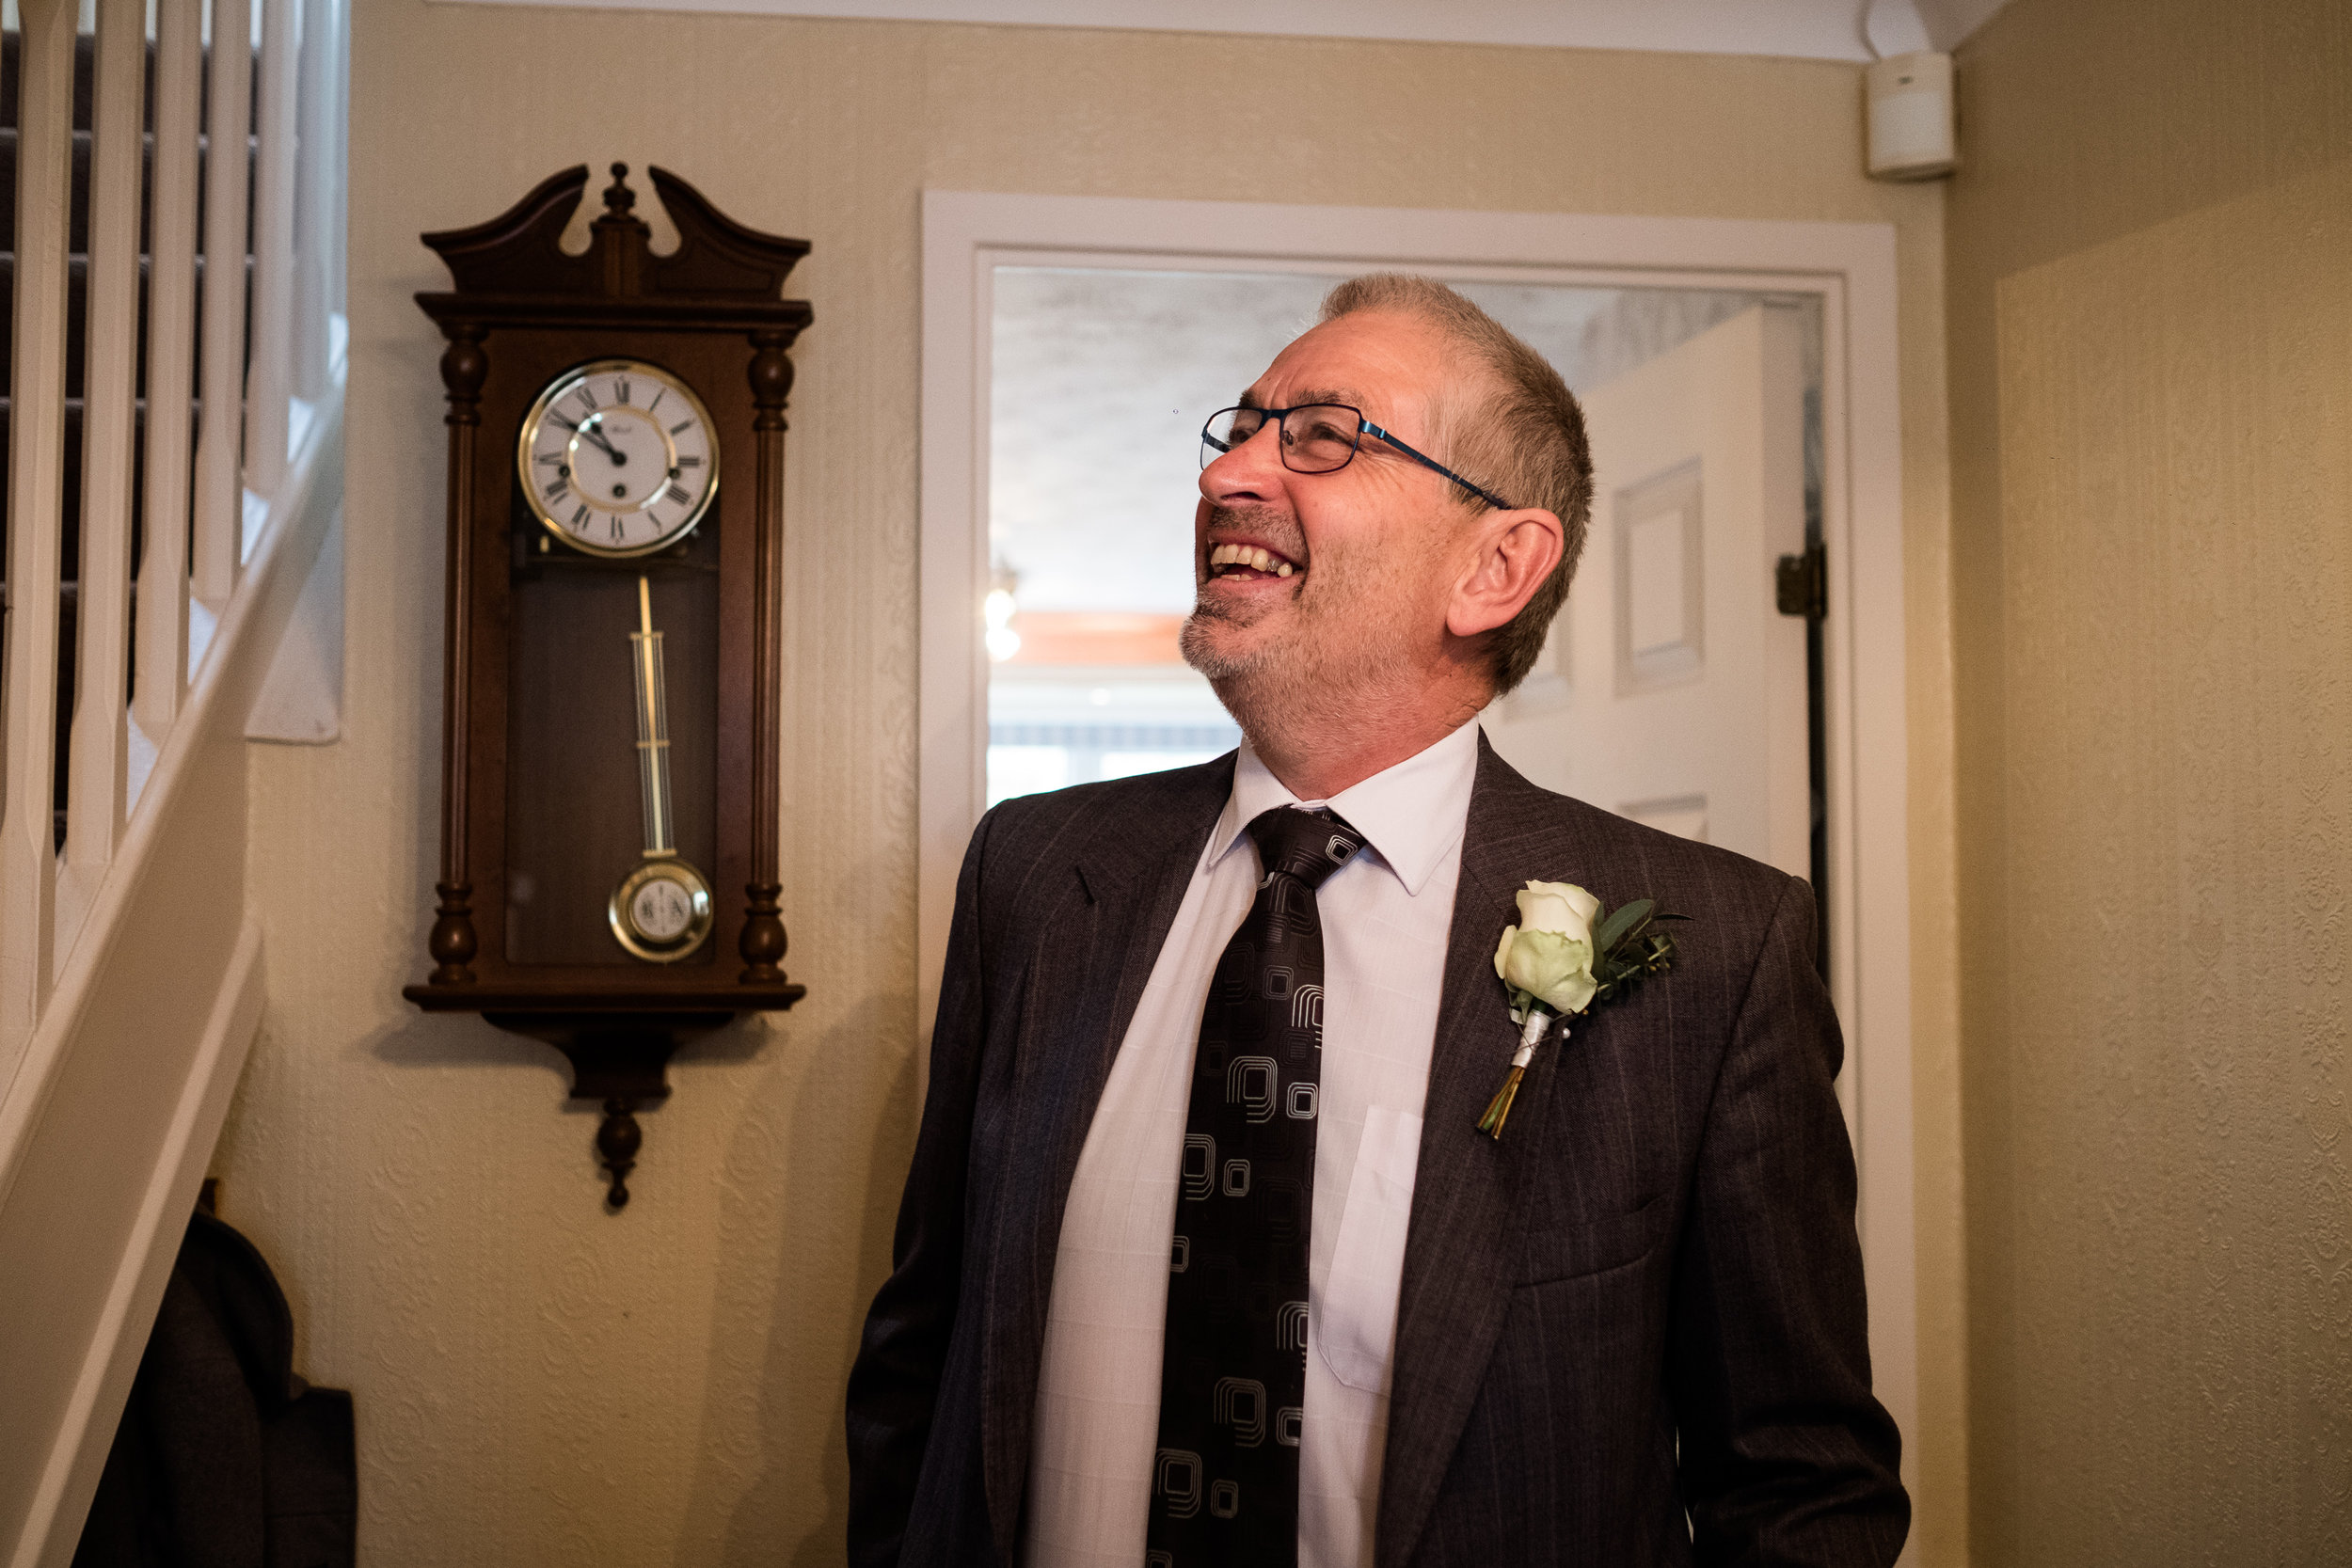 Birmingham Documentary Wedding Photography at New Hall, Sutton Coldfield Turkish Red Candid Reportage - Jenny Harper-14.jpg